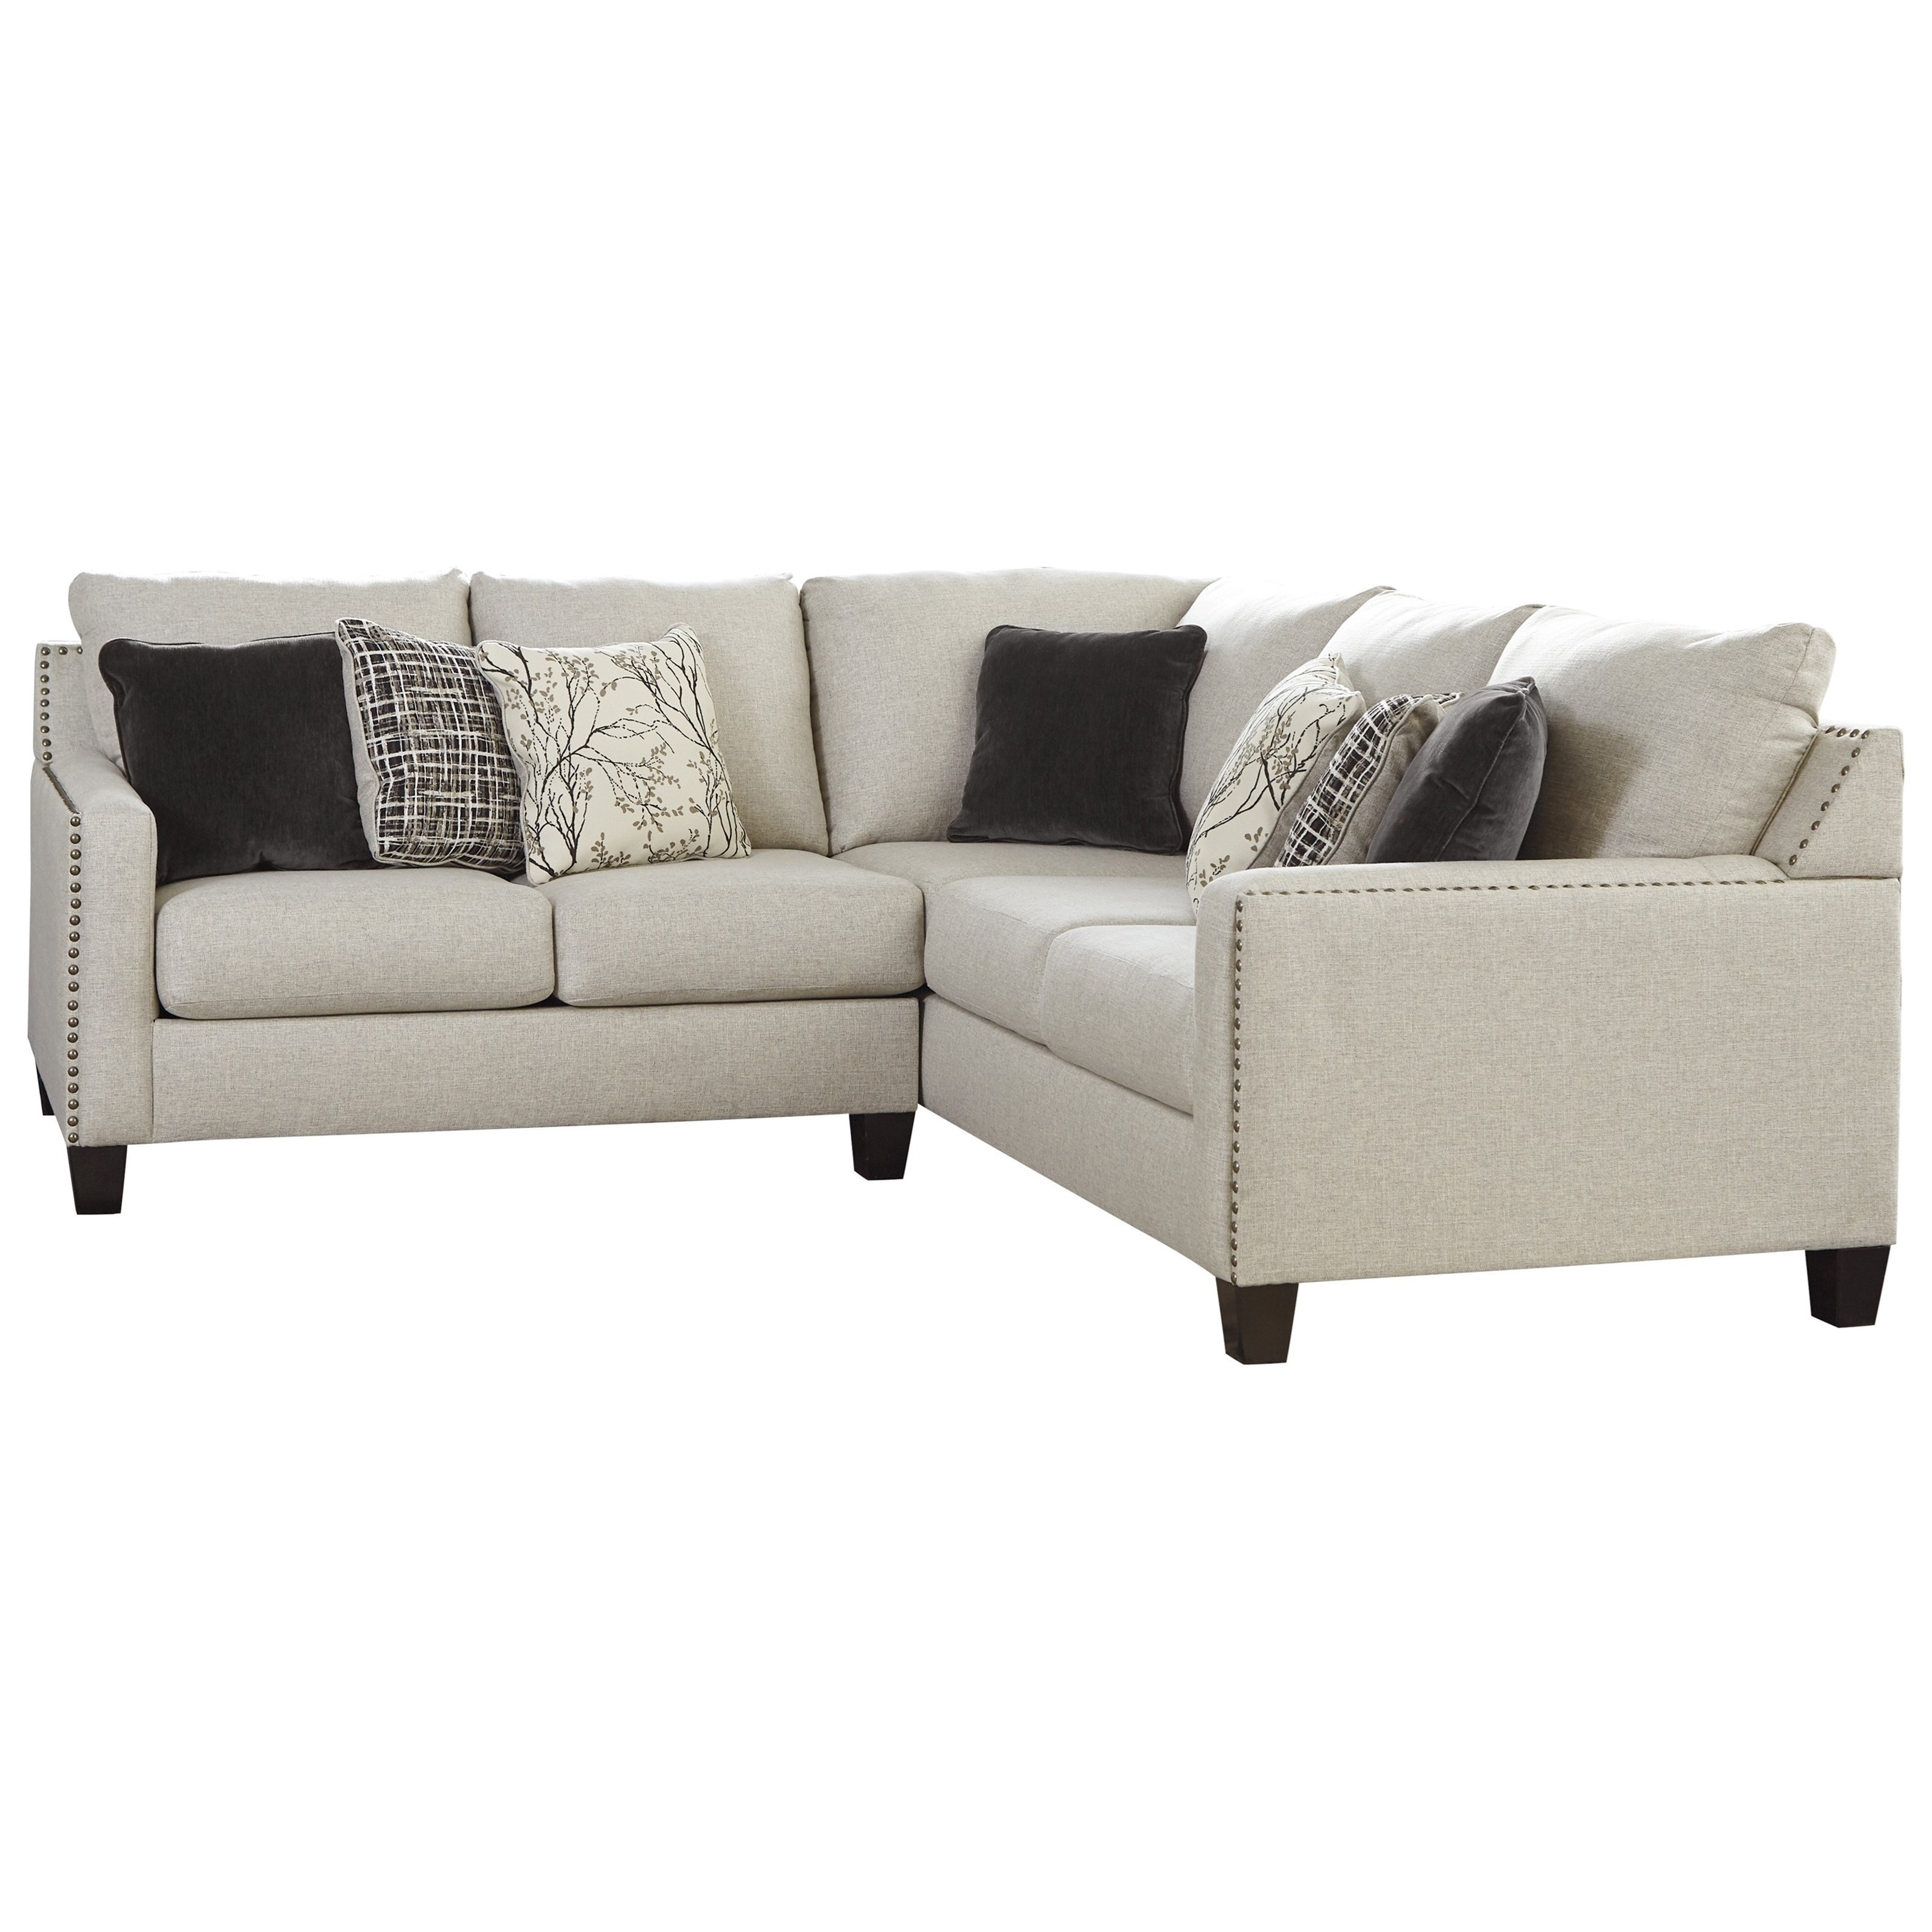 Signature Design By Ashley Hallenberg2 Piece Sectional ...